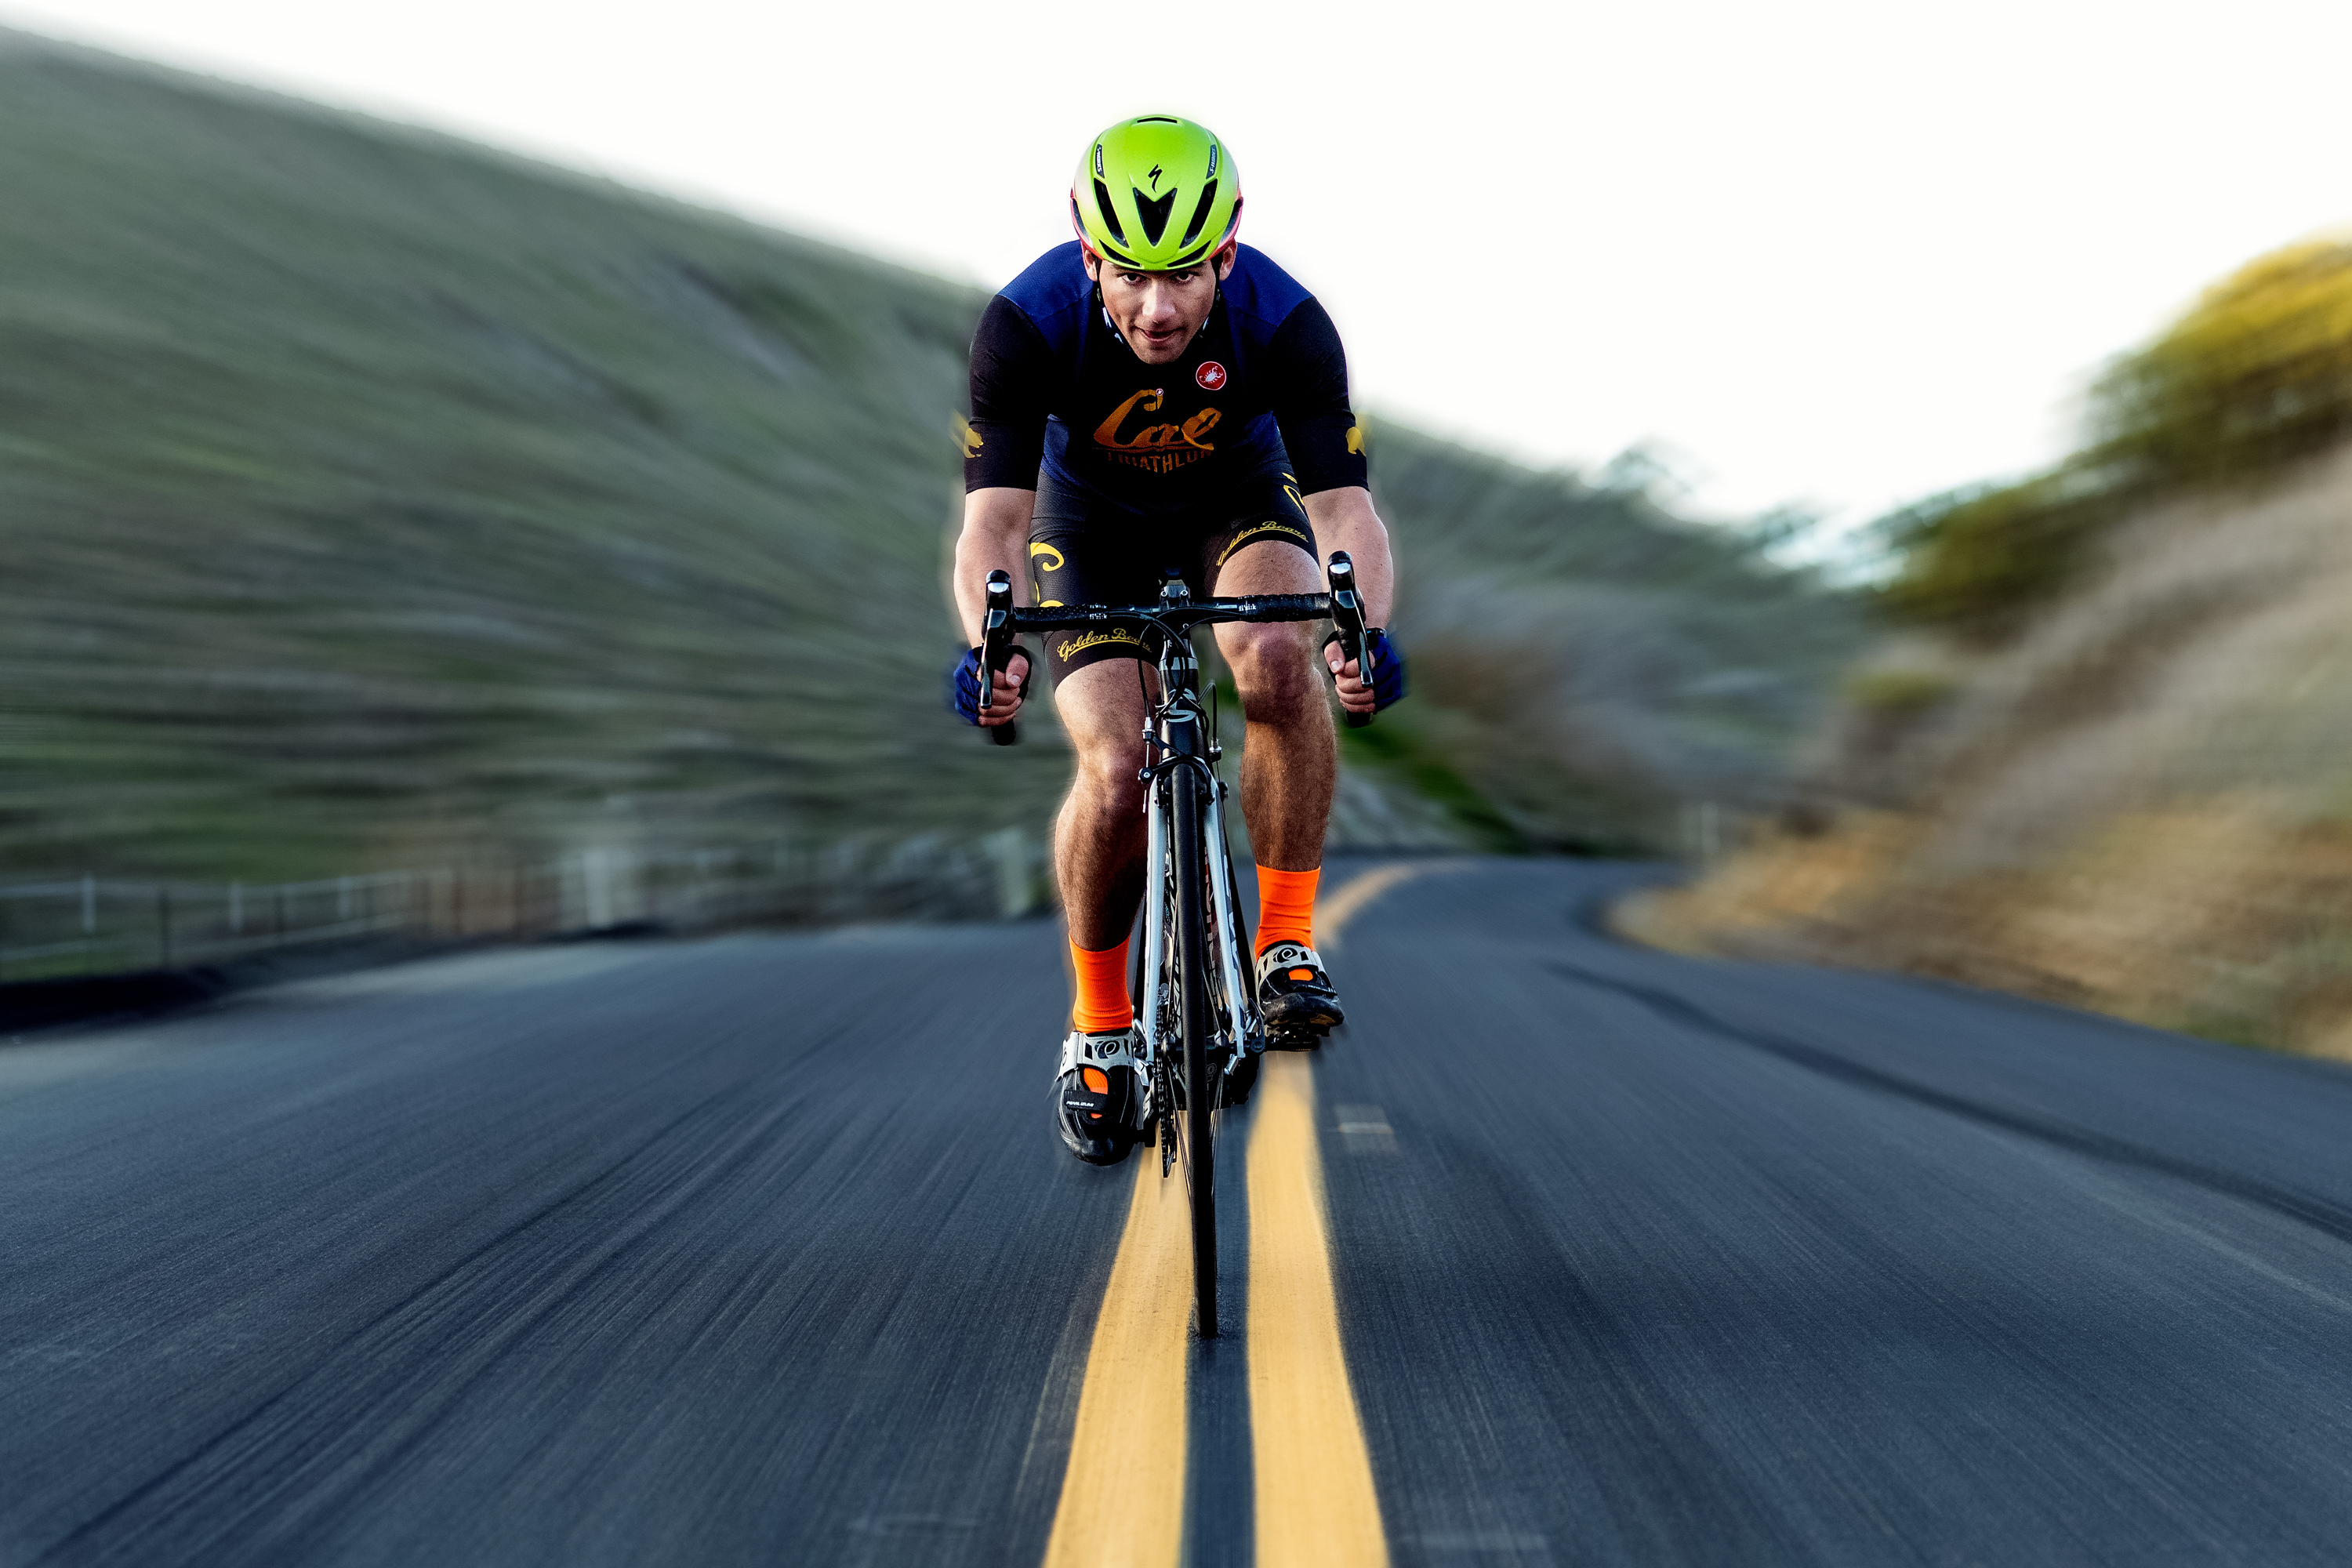 UCBerkeley_triathlete_rides_cannondale_advertising_photographer-0007